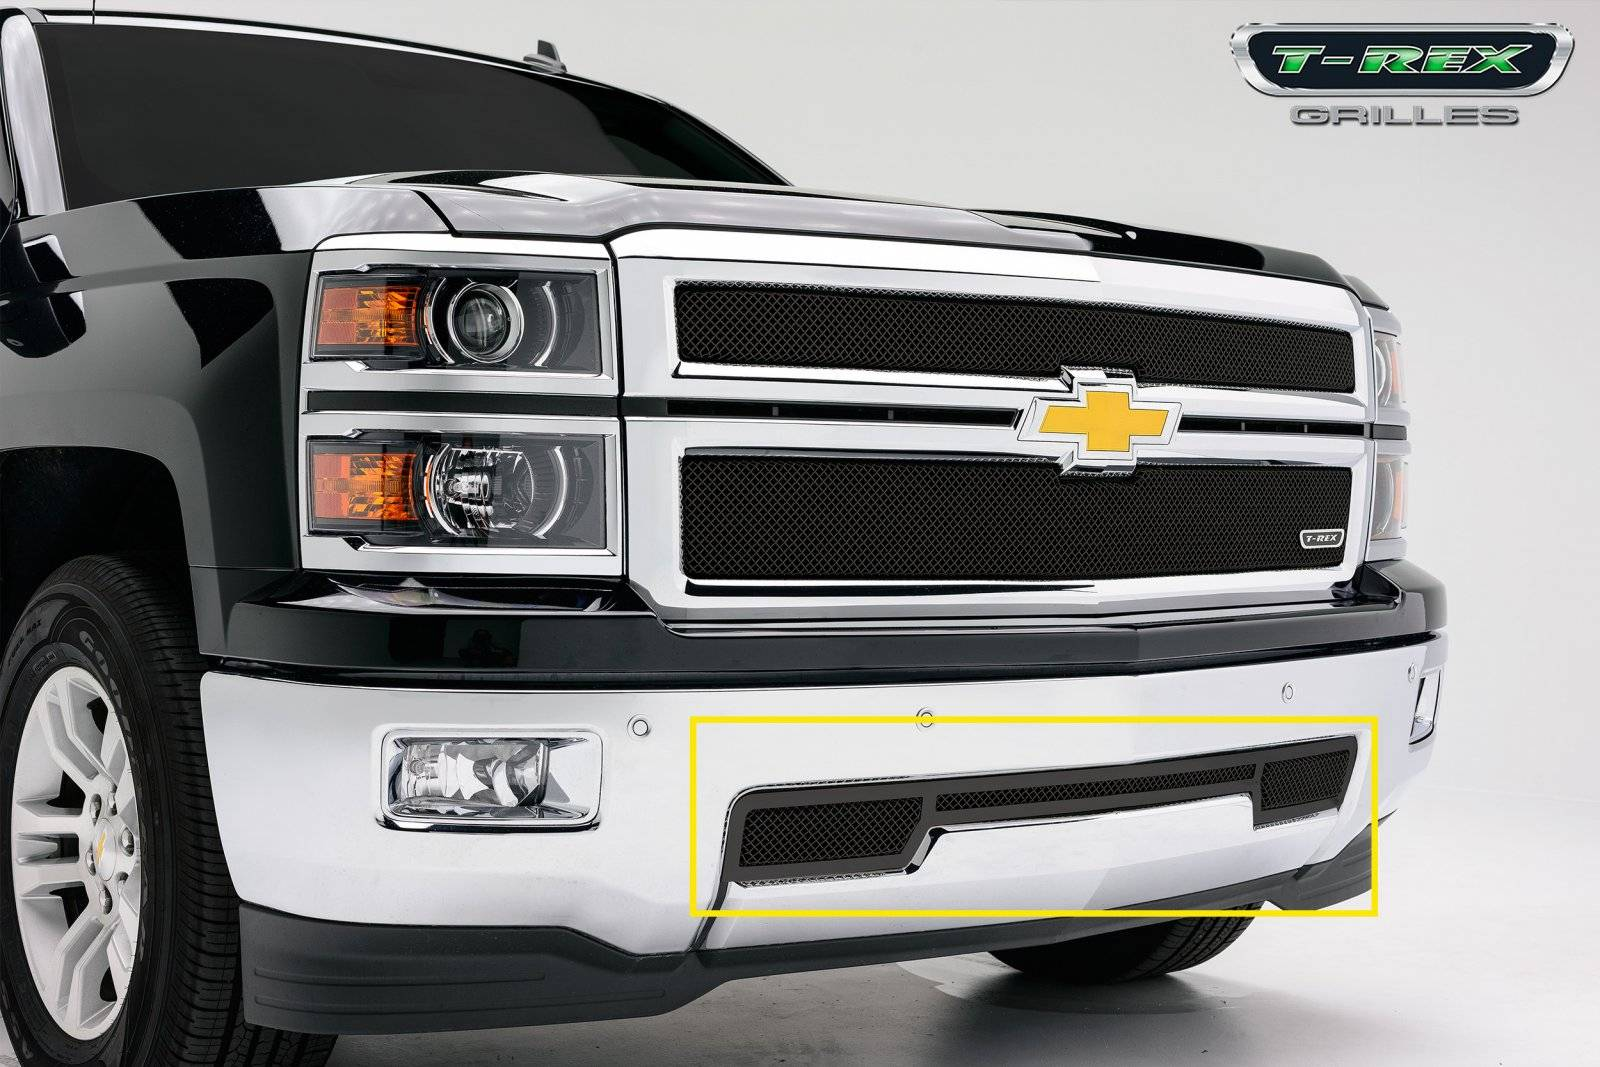 T-REX Chevrolet Silverado Upper Class Bumper Mesh Grille - All Black - Pt # 52117